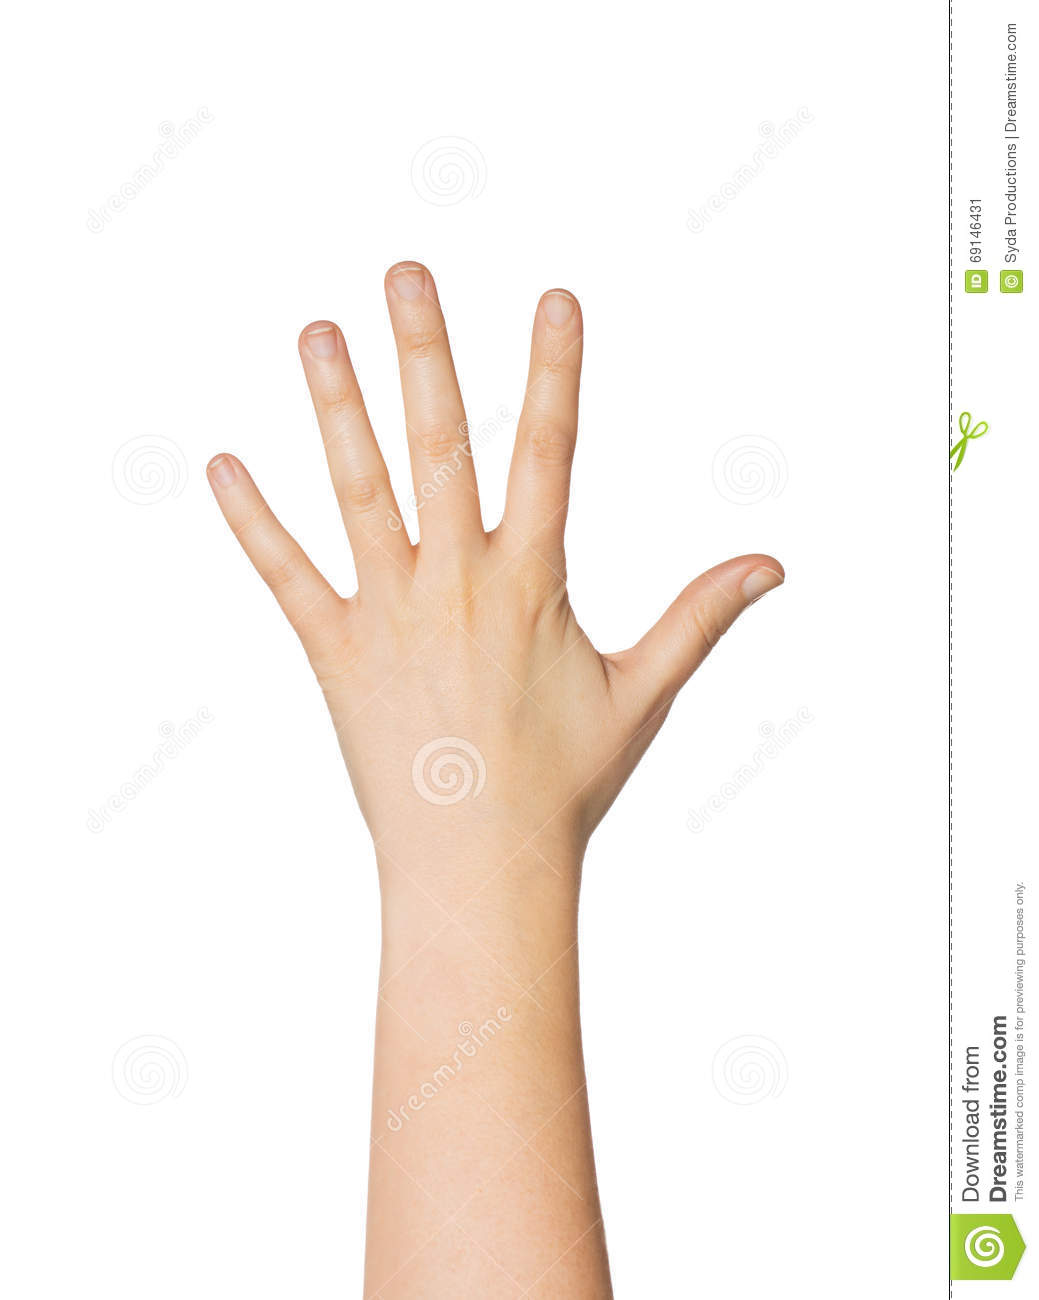 Close Up Of Hand Showing Five Fingers Stock Image - Image ...